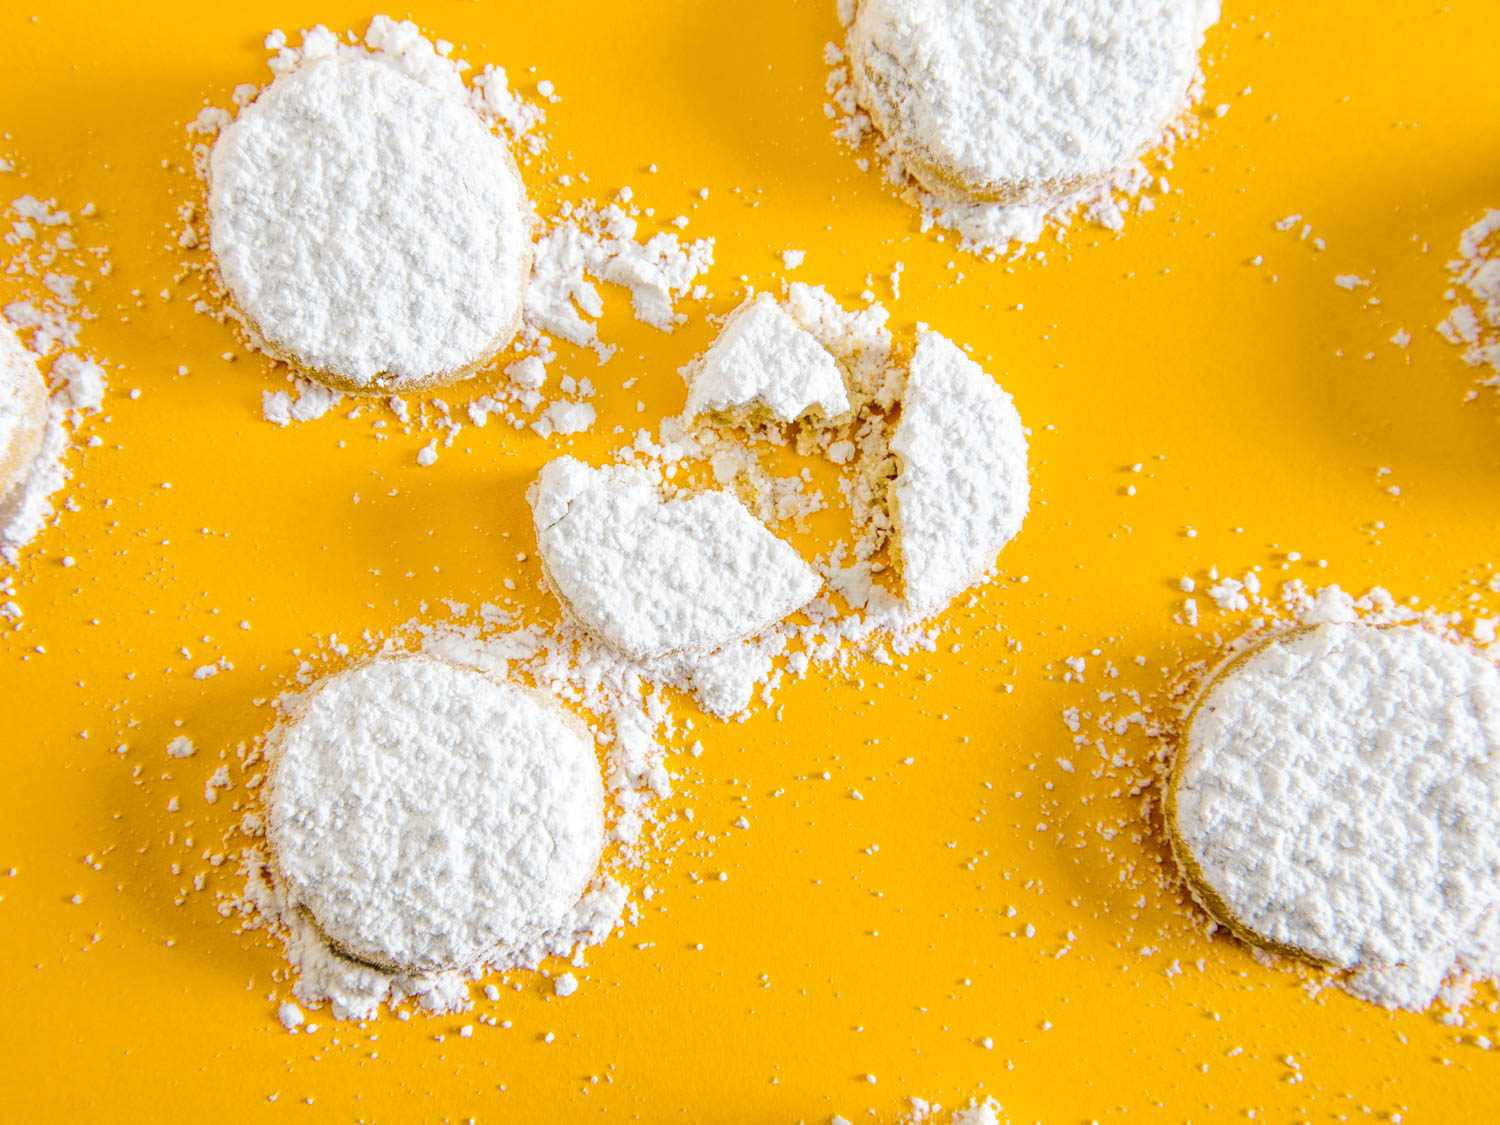 lemon meltaway cookies dusted with powdered sugar on a bright yellow background